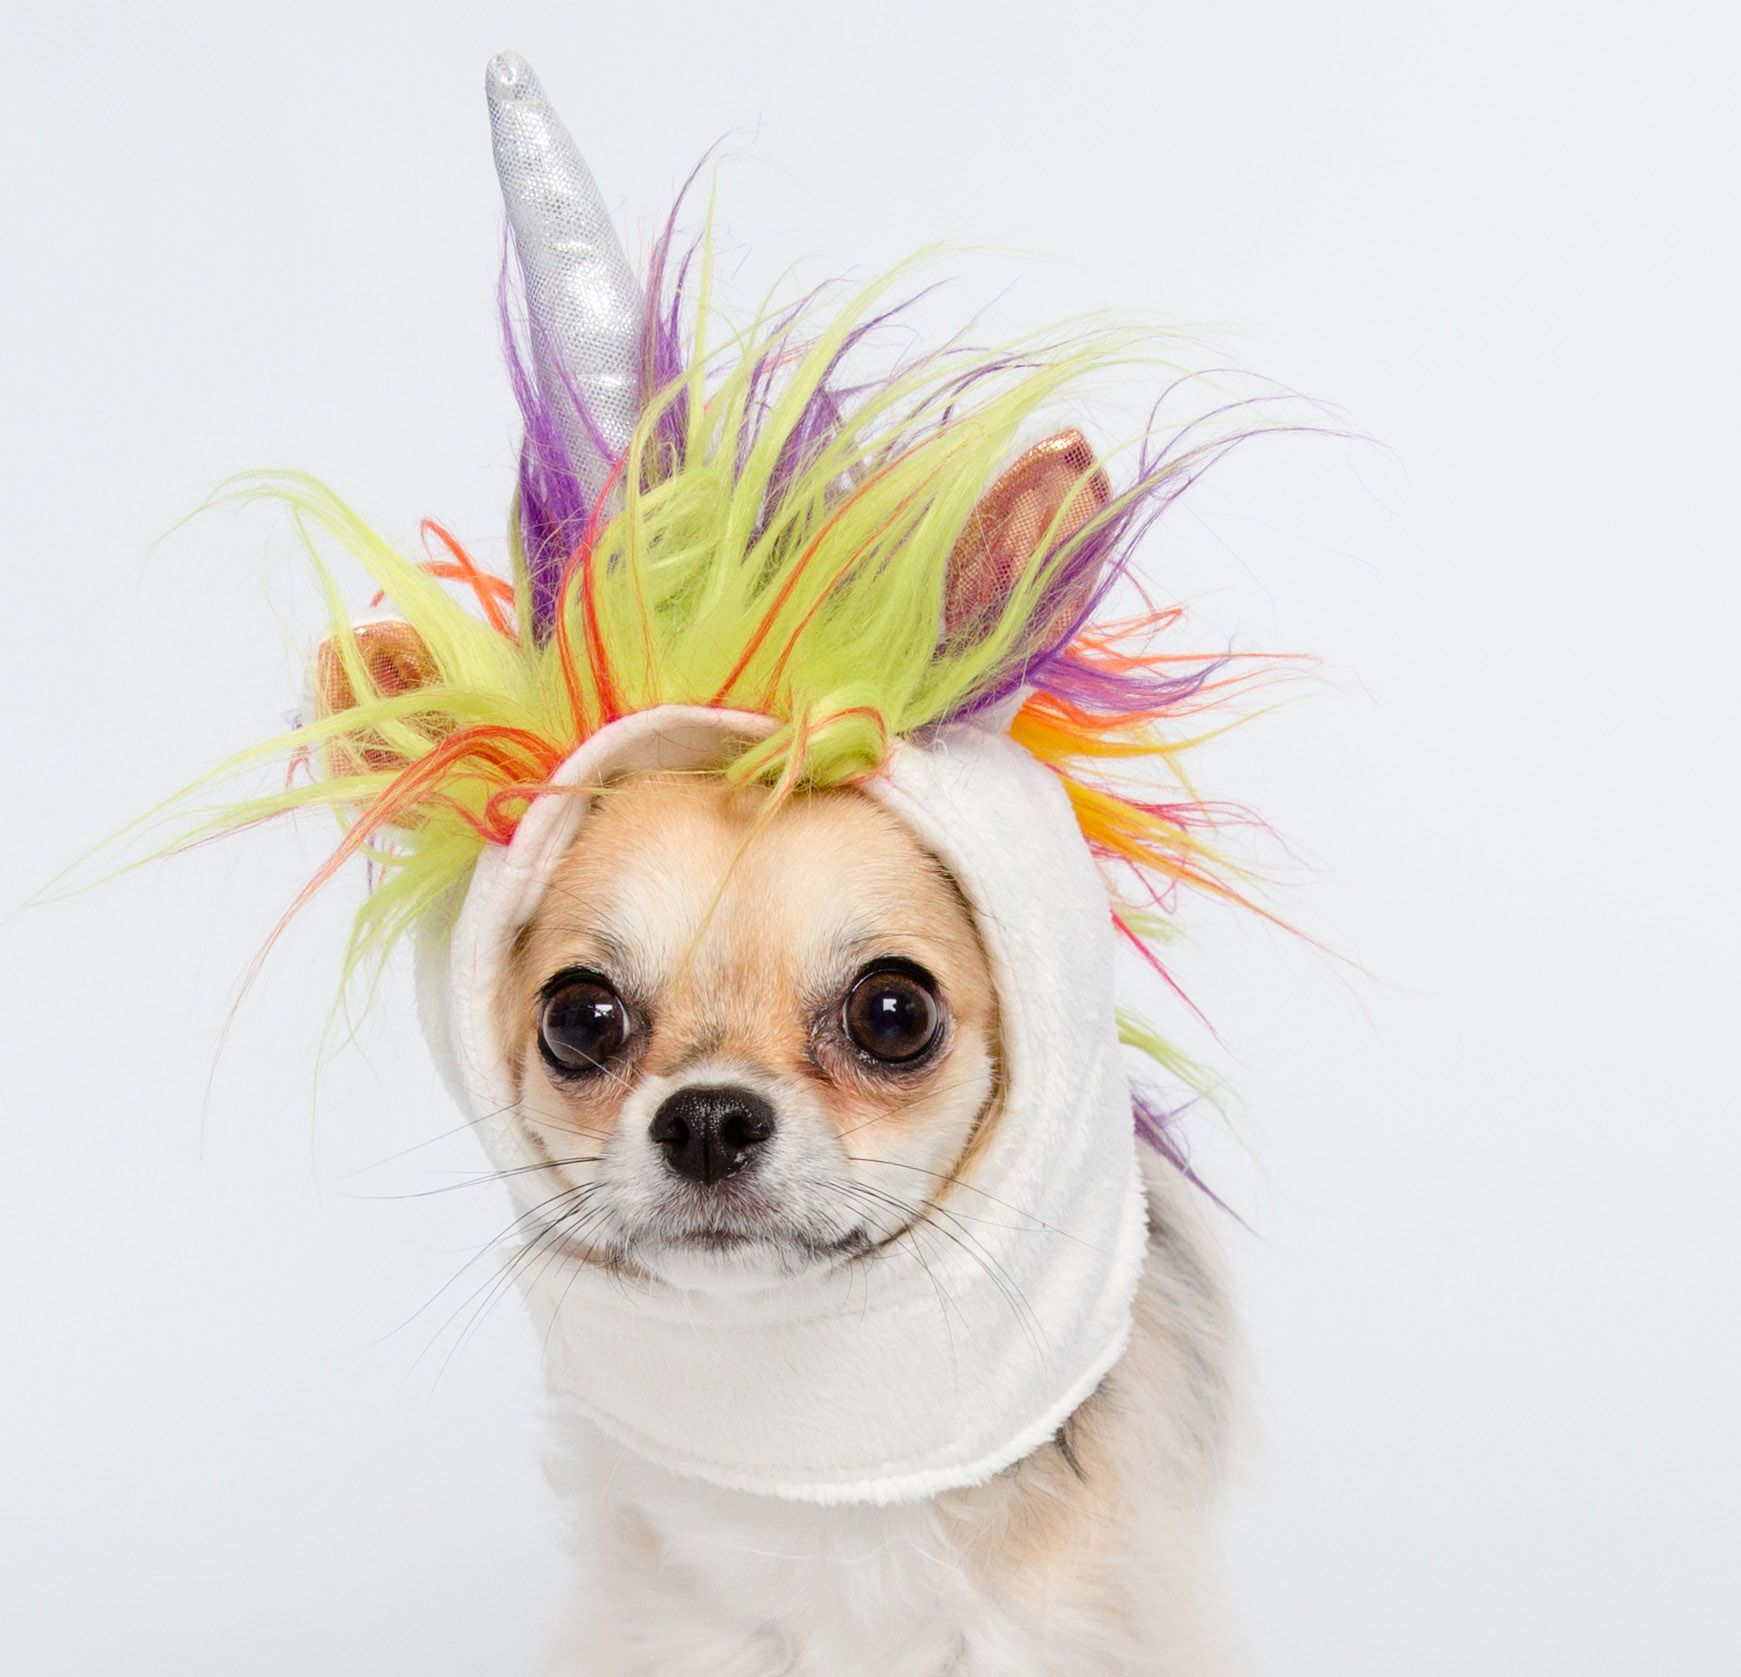 f1616b30b590c Win a FREE unicorn costume for your cat or dog! Sign up for our weekly  contest.